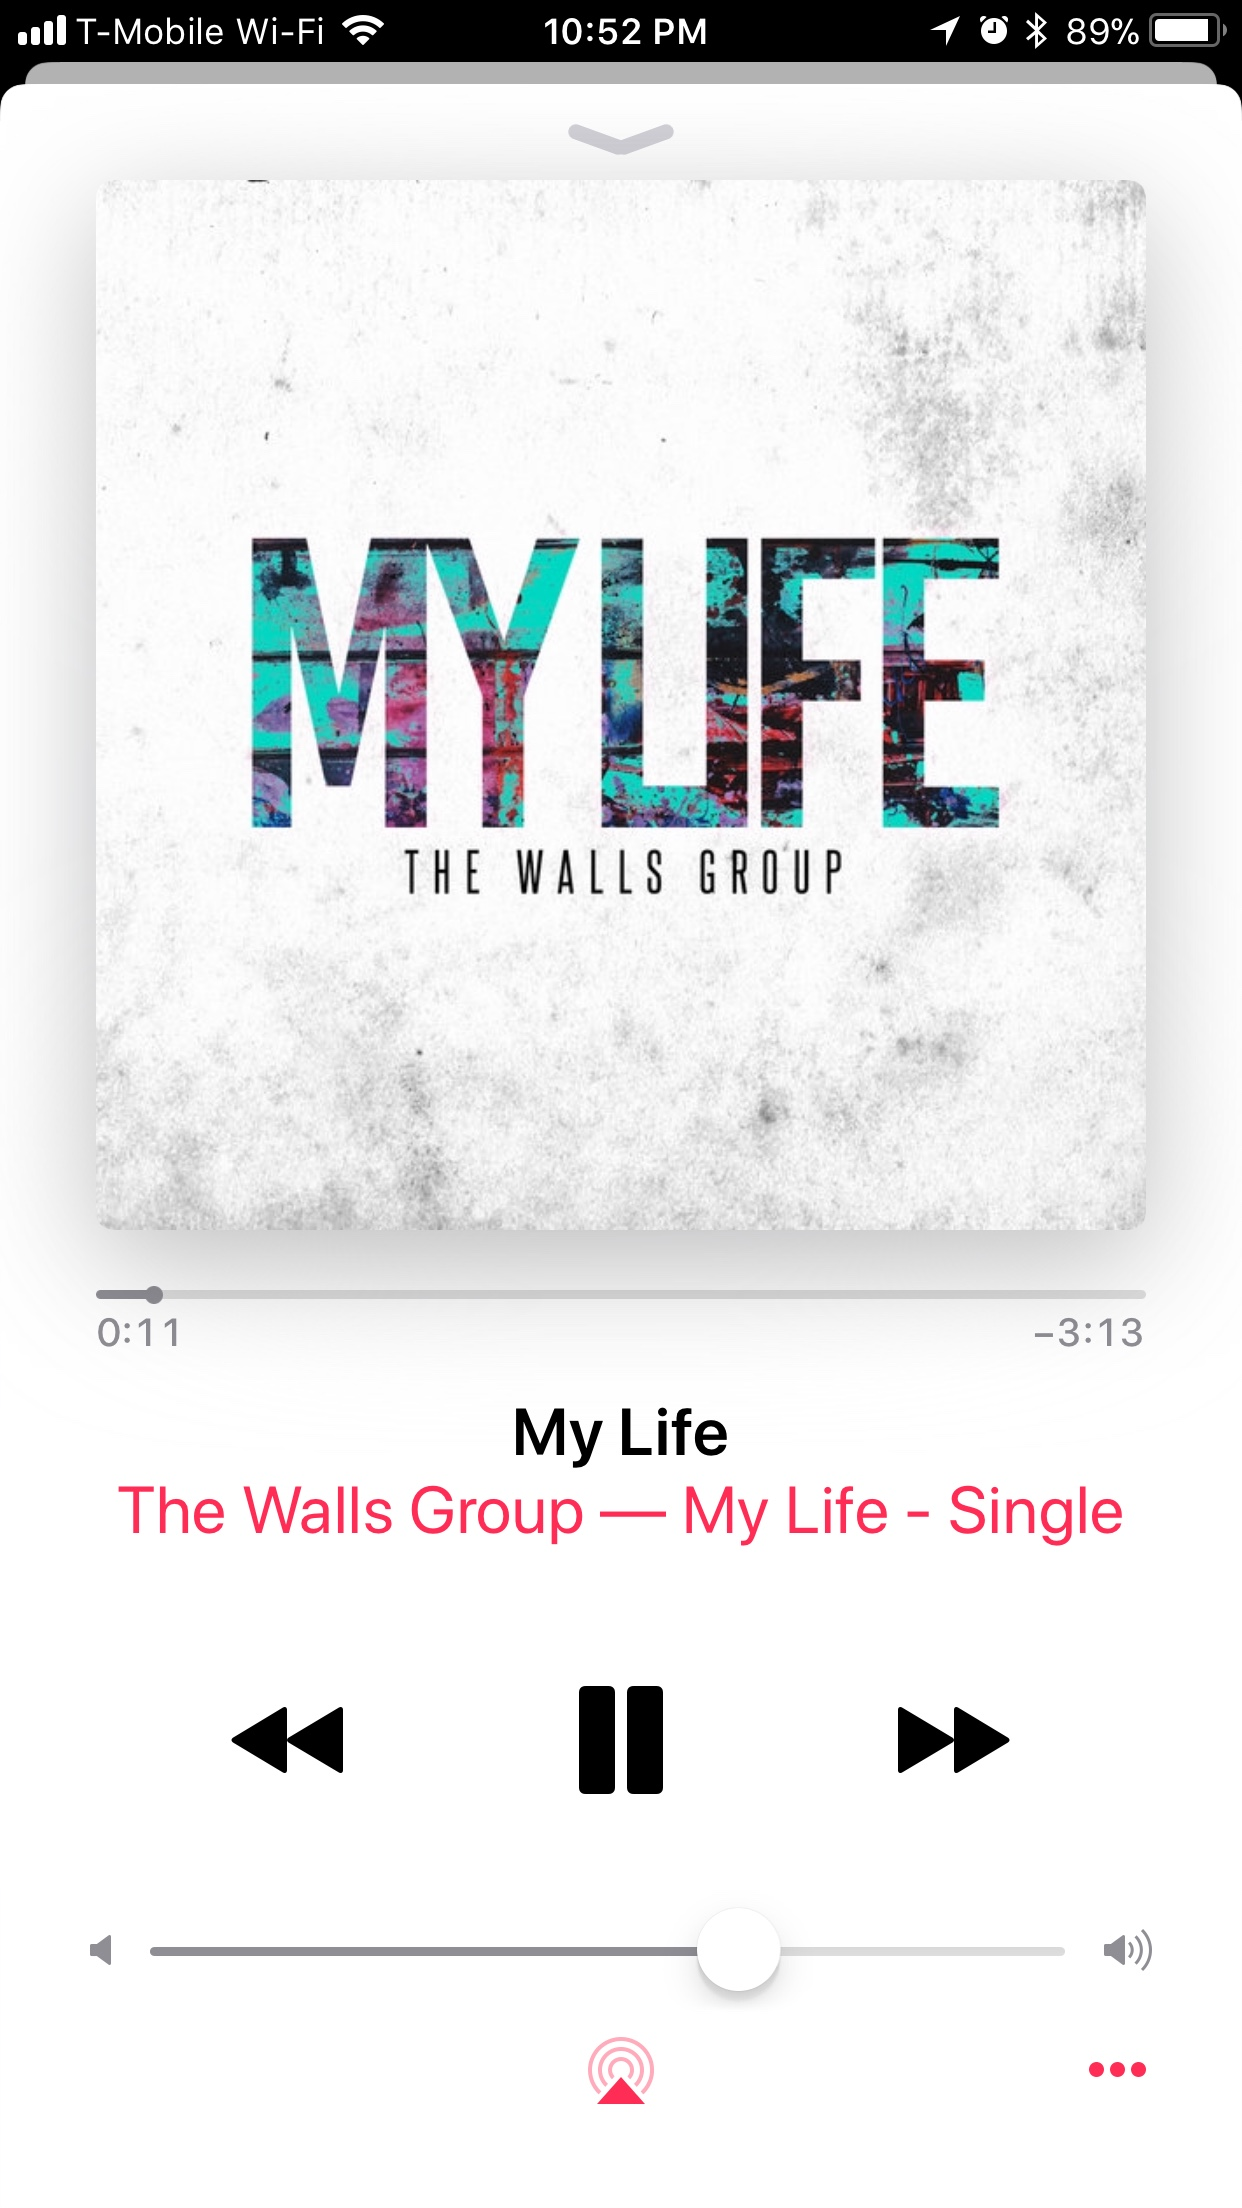 The Walls Group - My Life